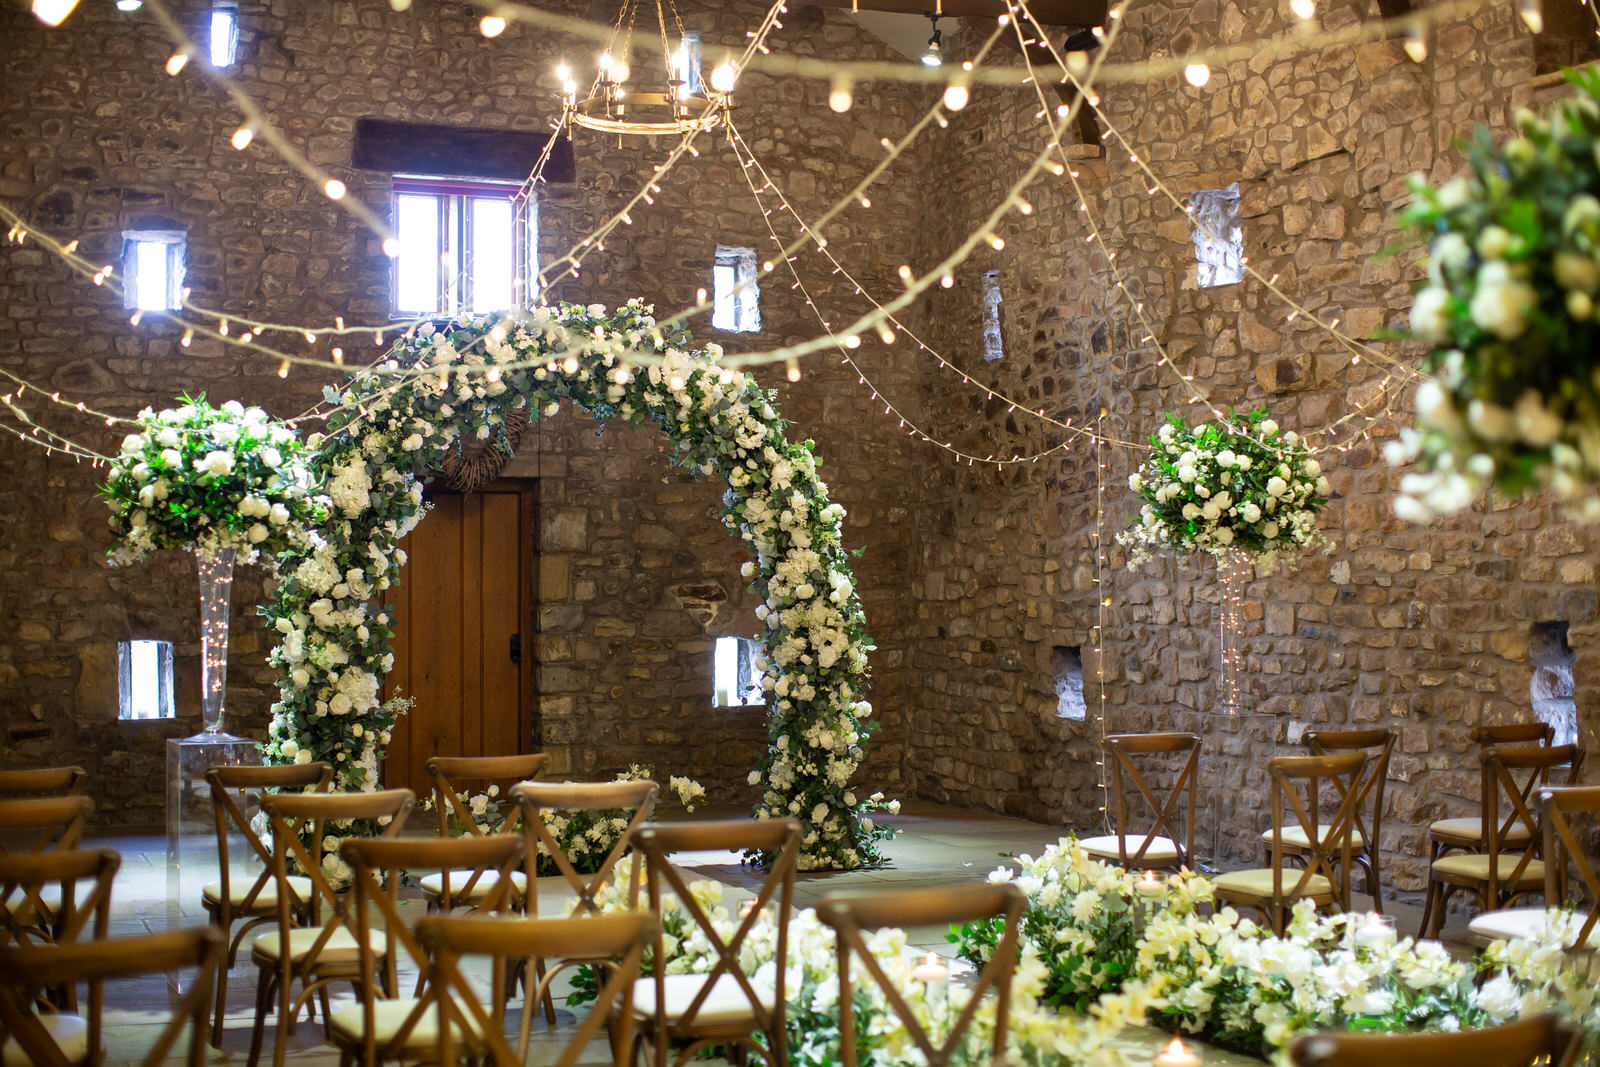 moongate white roses inside tithe barn lancashire